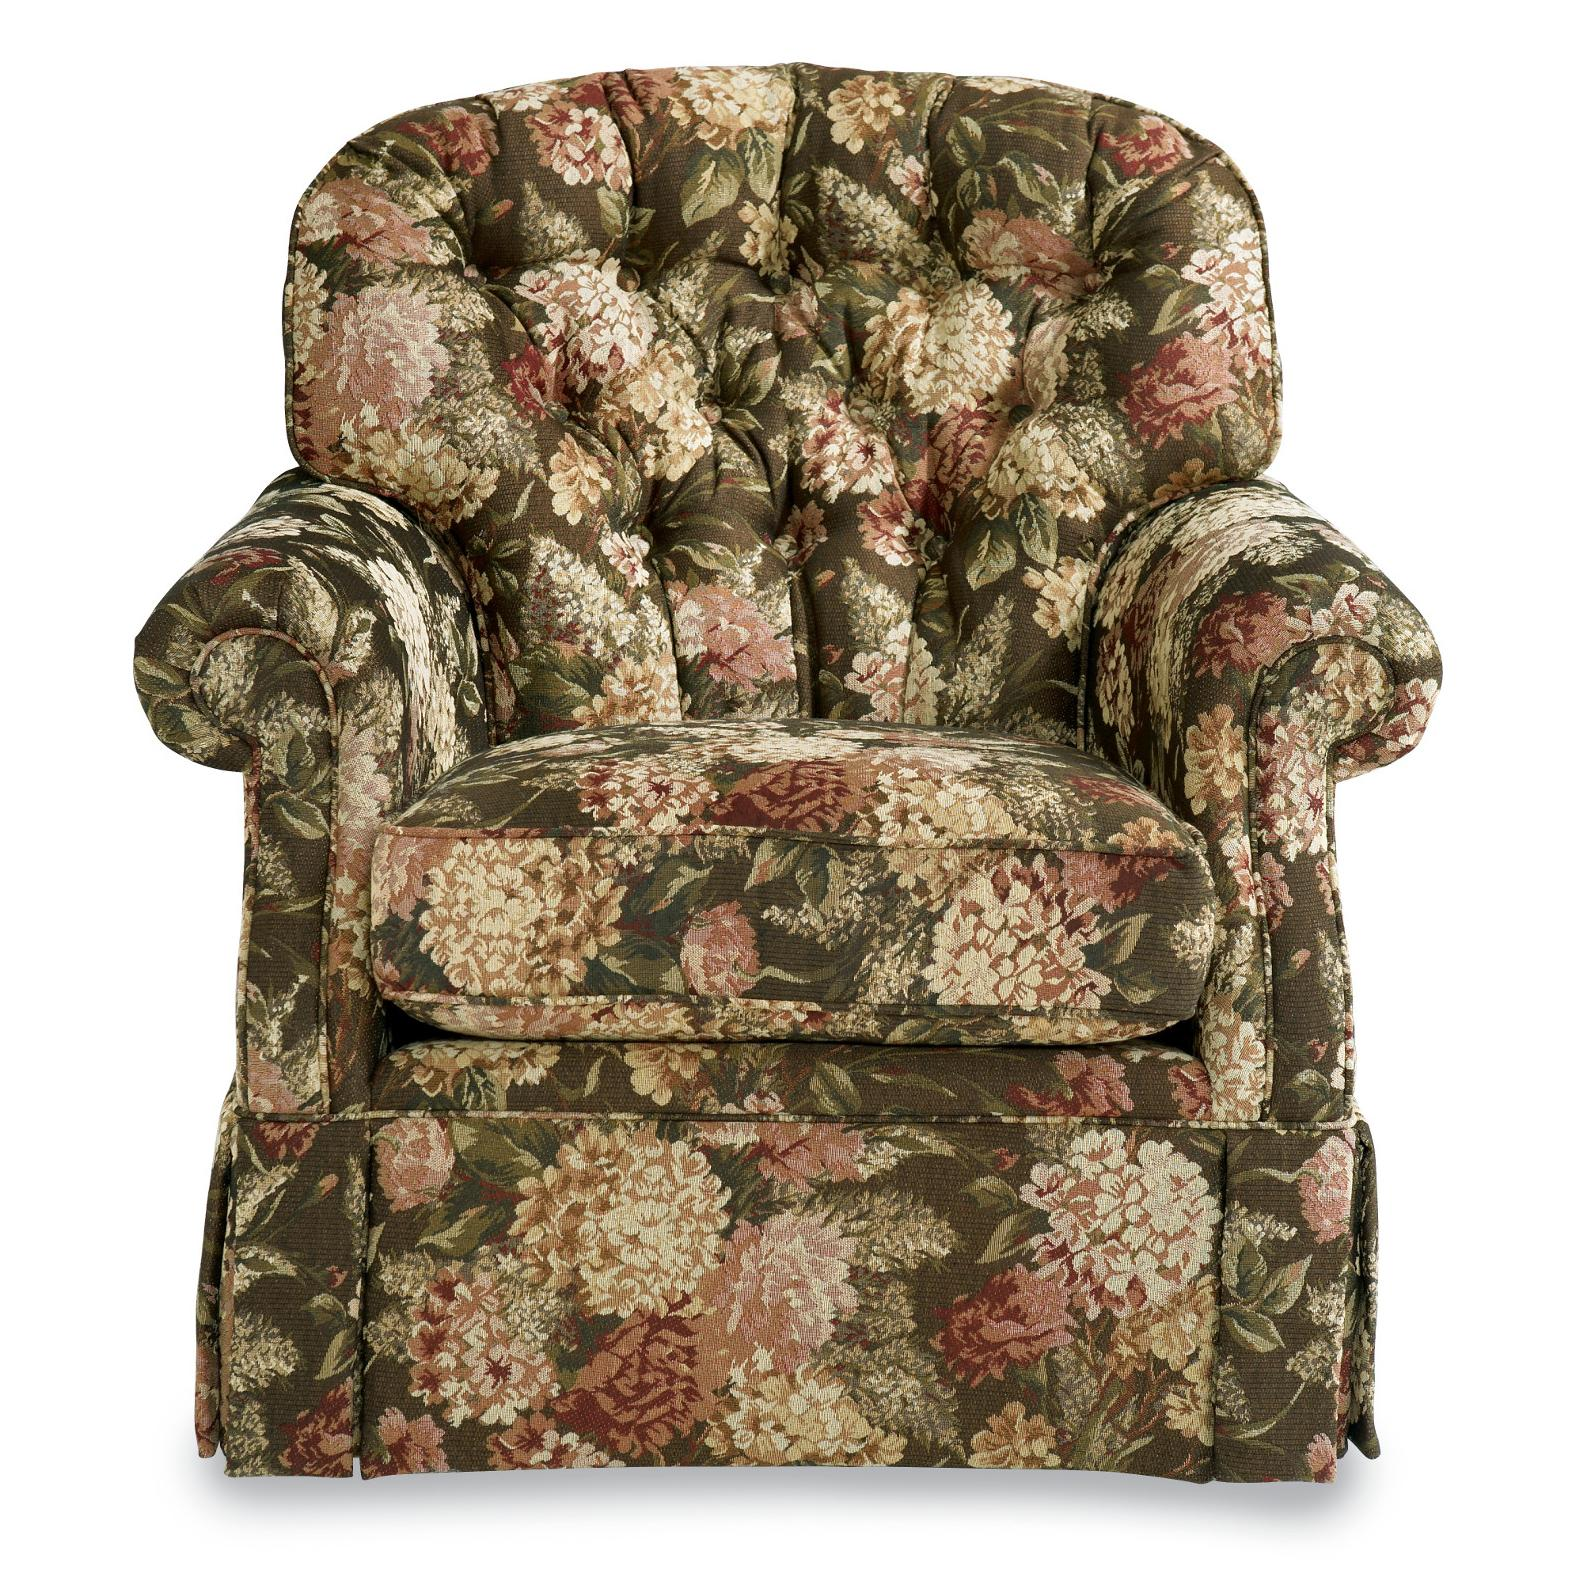 Traditional Swivel Rocker With Tufted Back And Kick Pleat